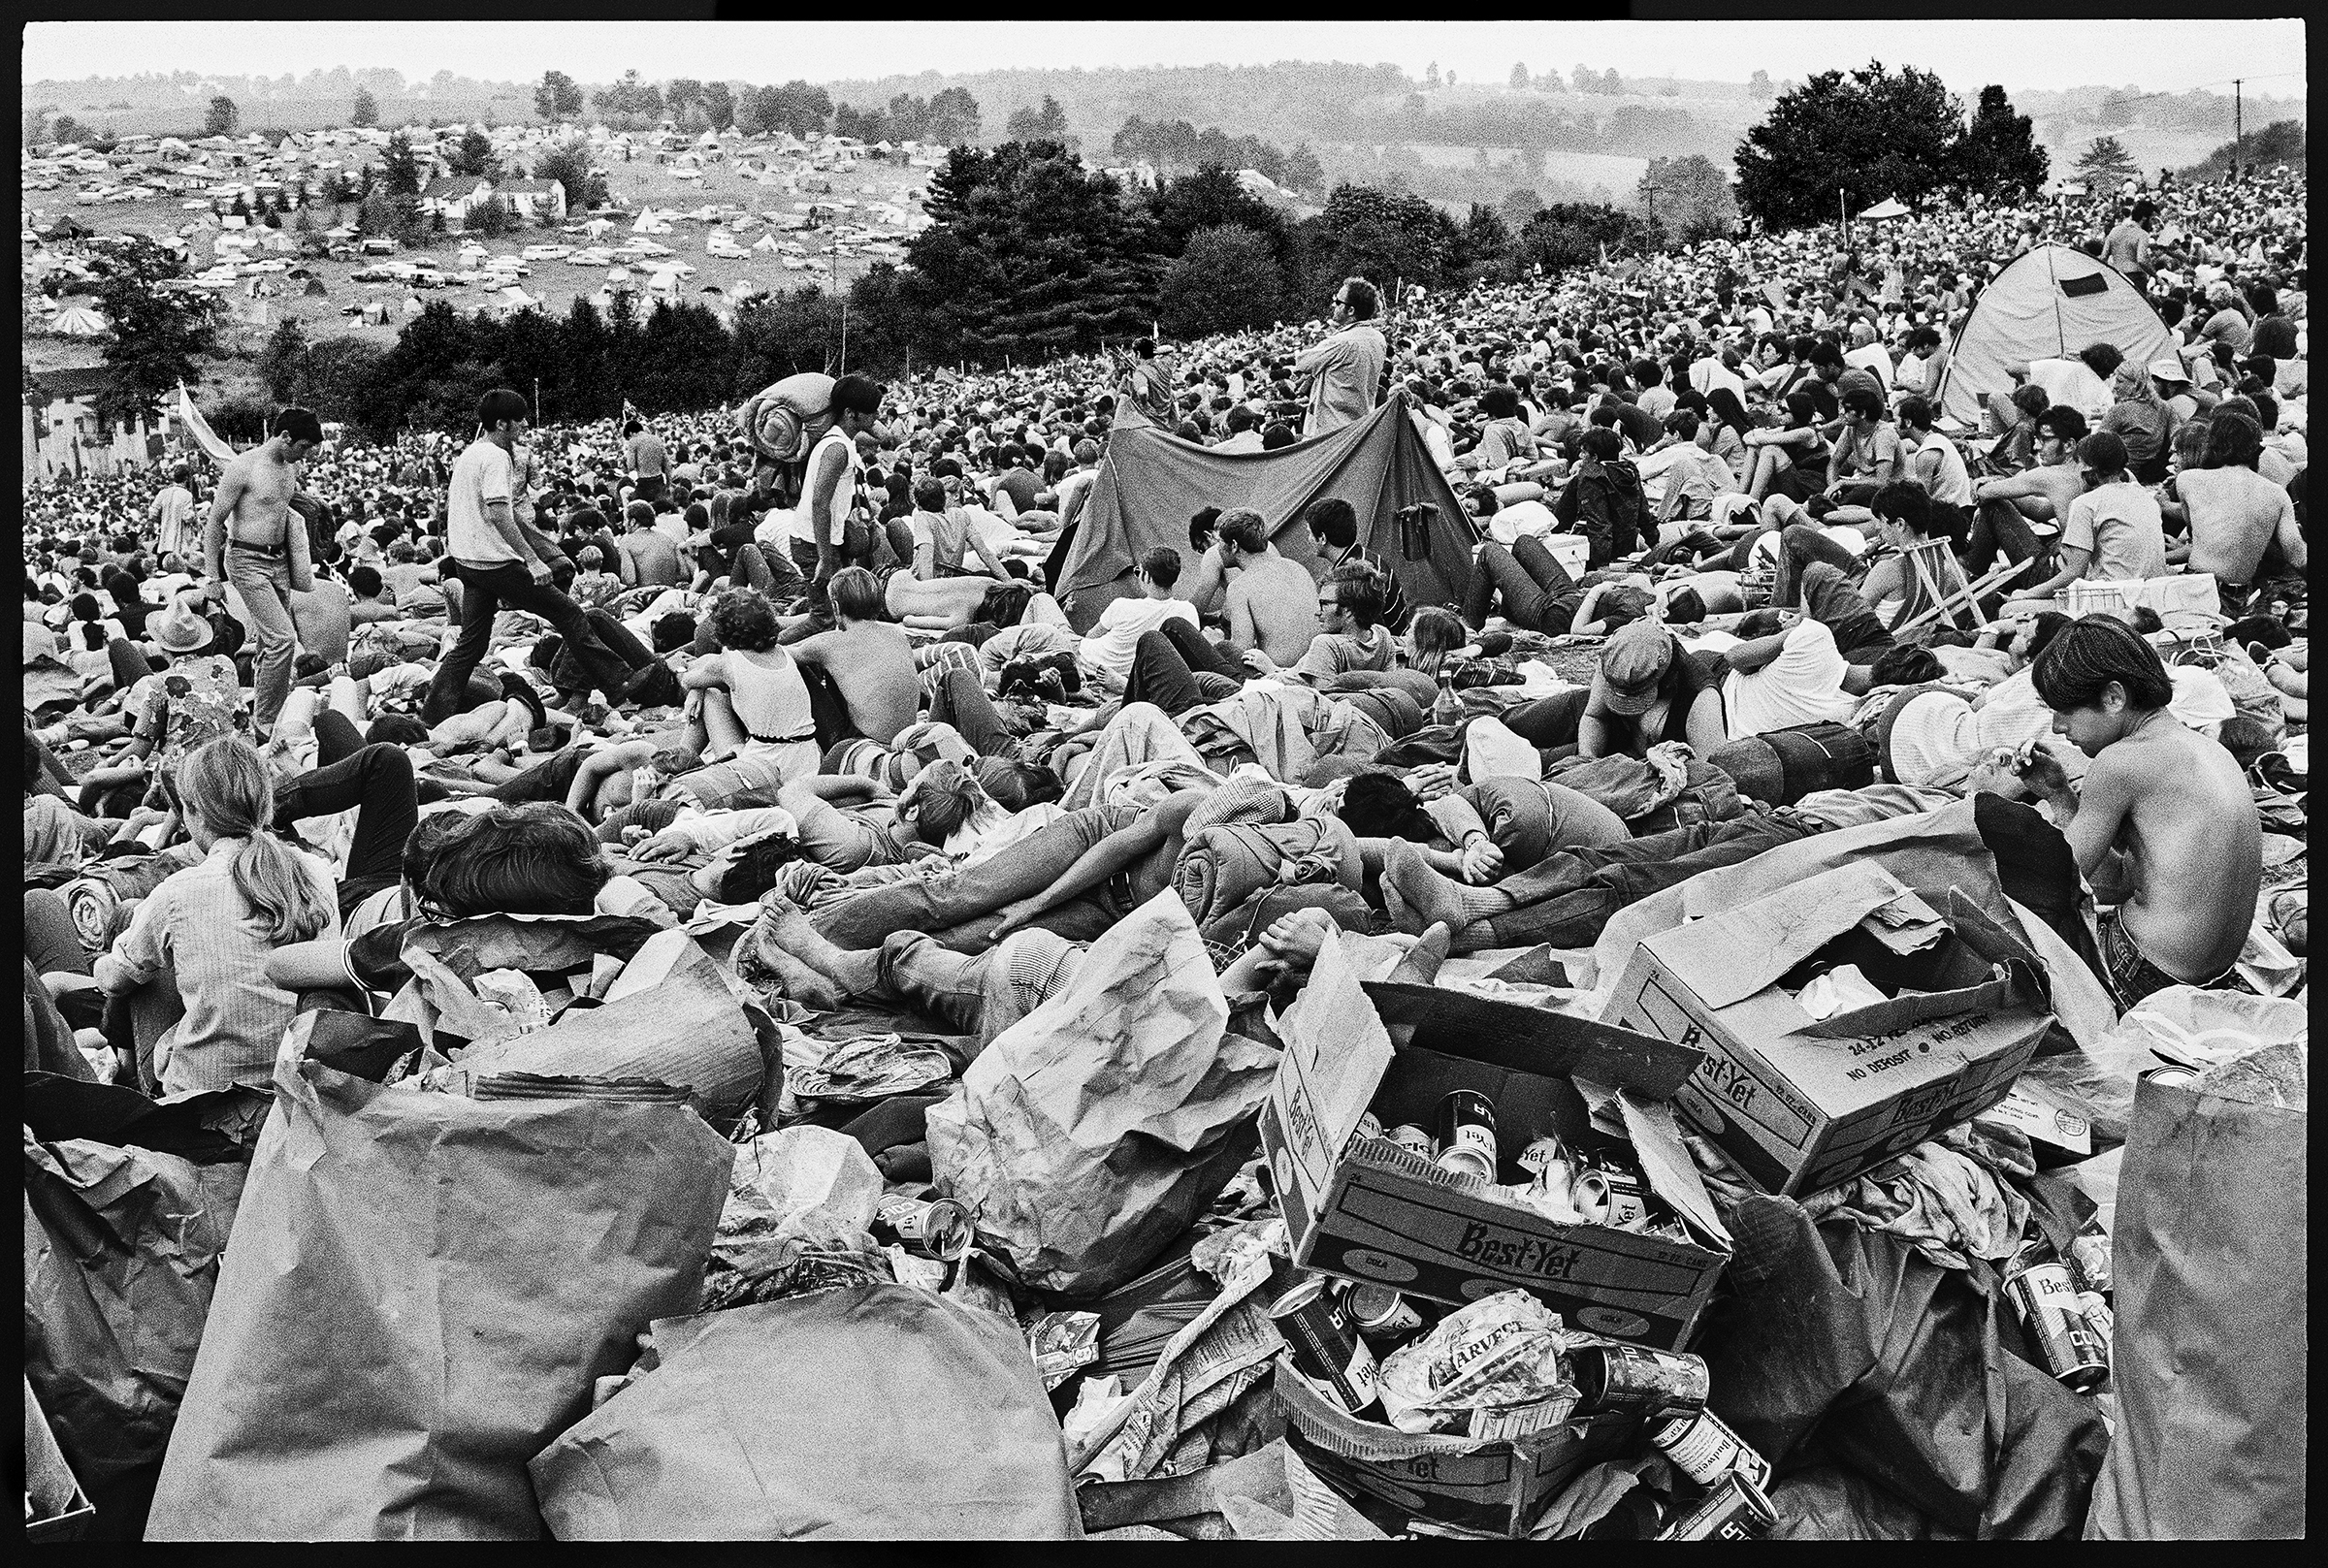 A crowd on the hillside at Woodstock.